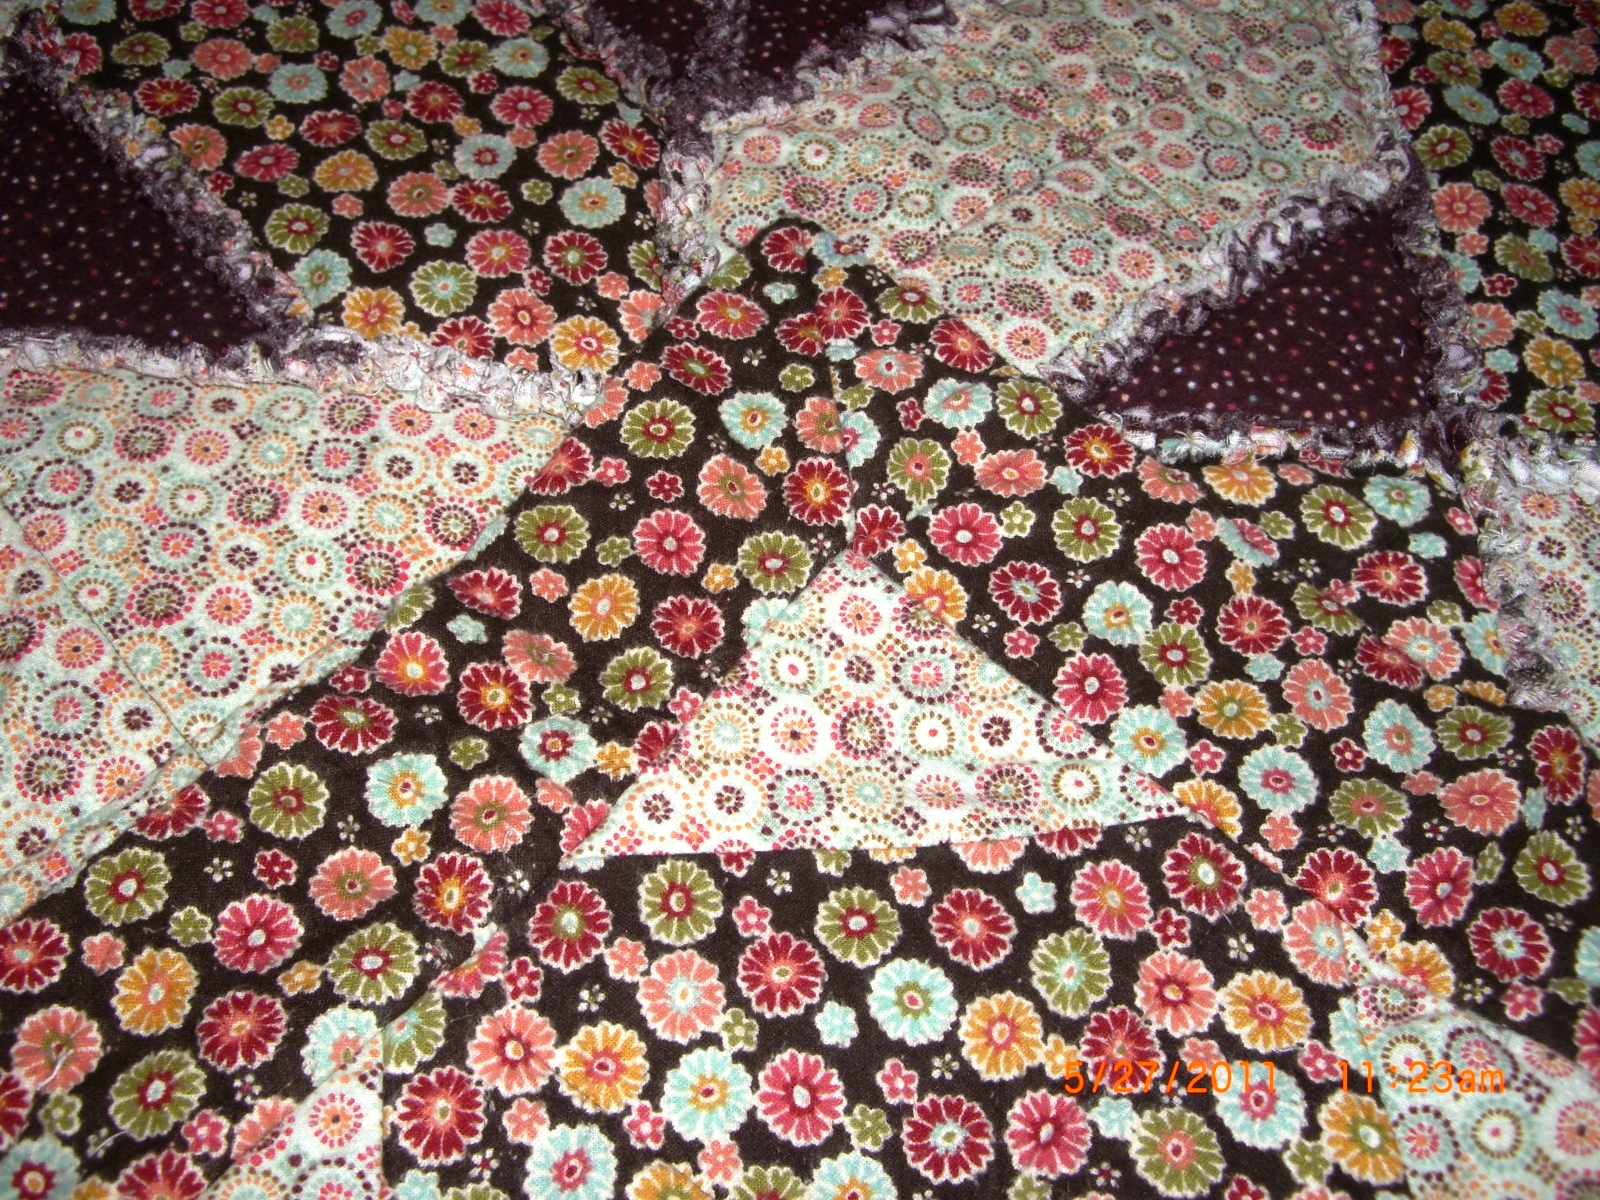 My.quilted.life: Handmade, Queen Size, Reversible, Rag Quilt in rich, warm, brown tones ...